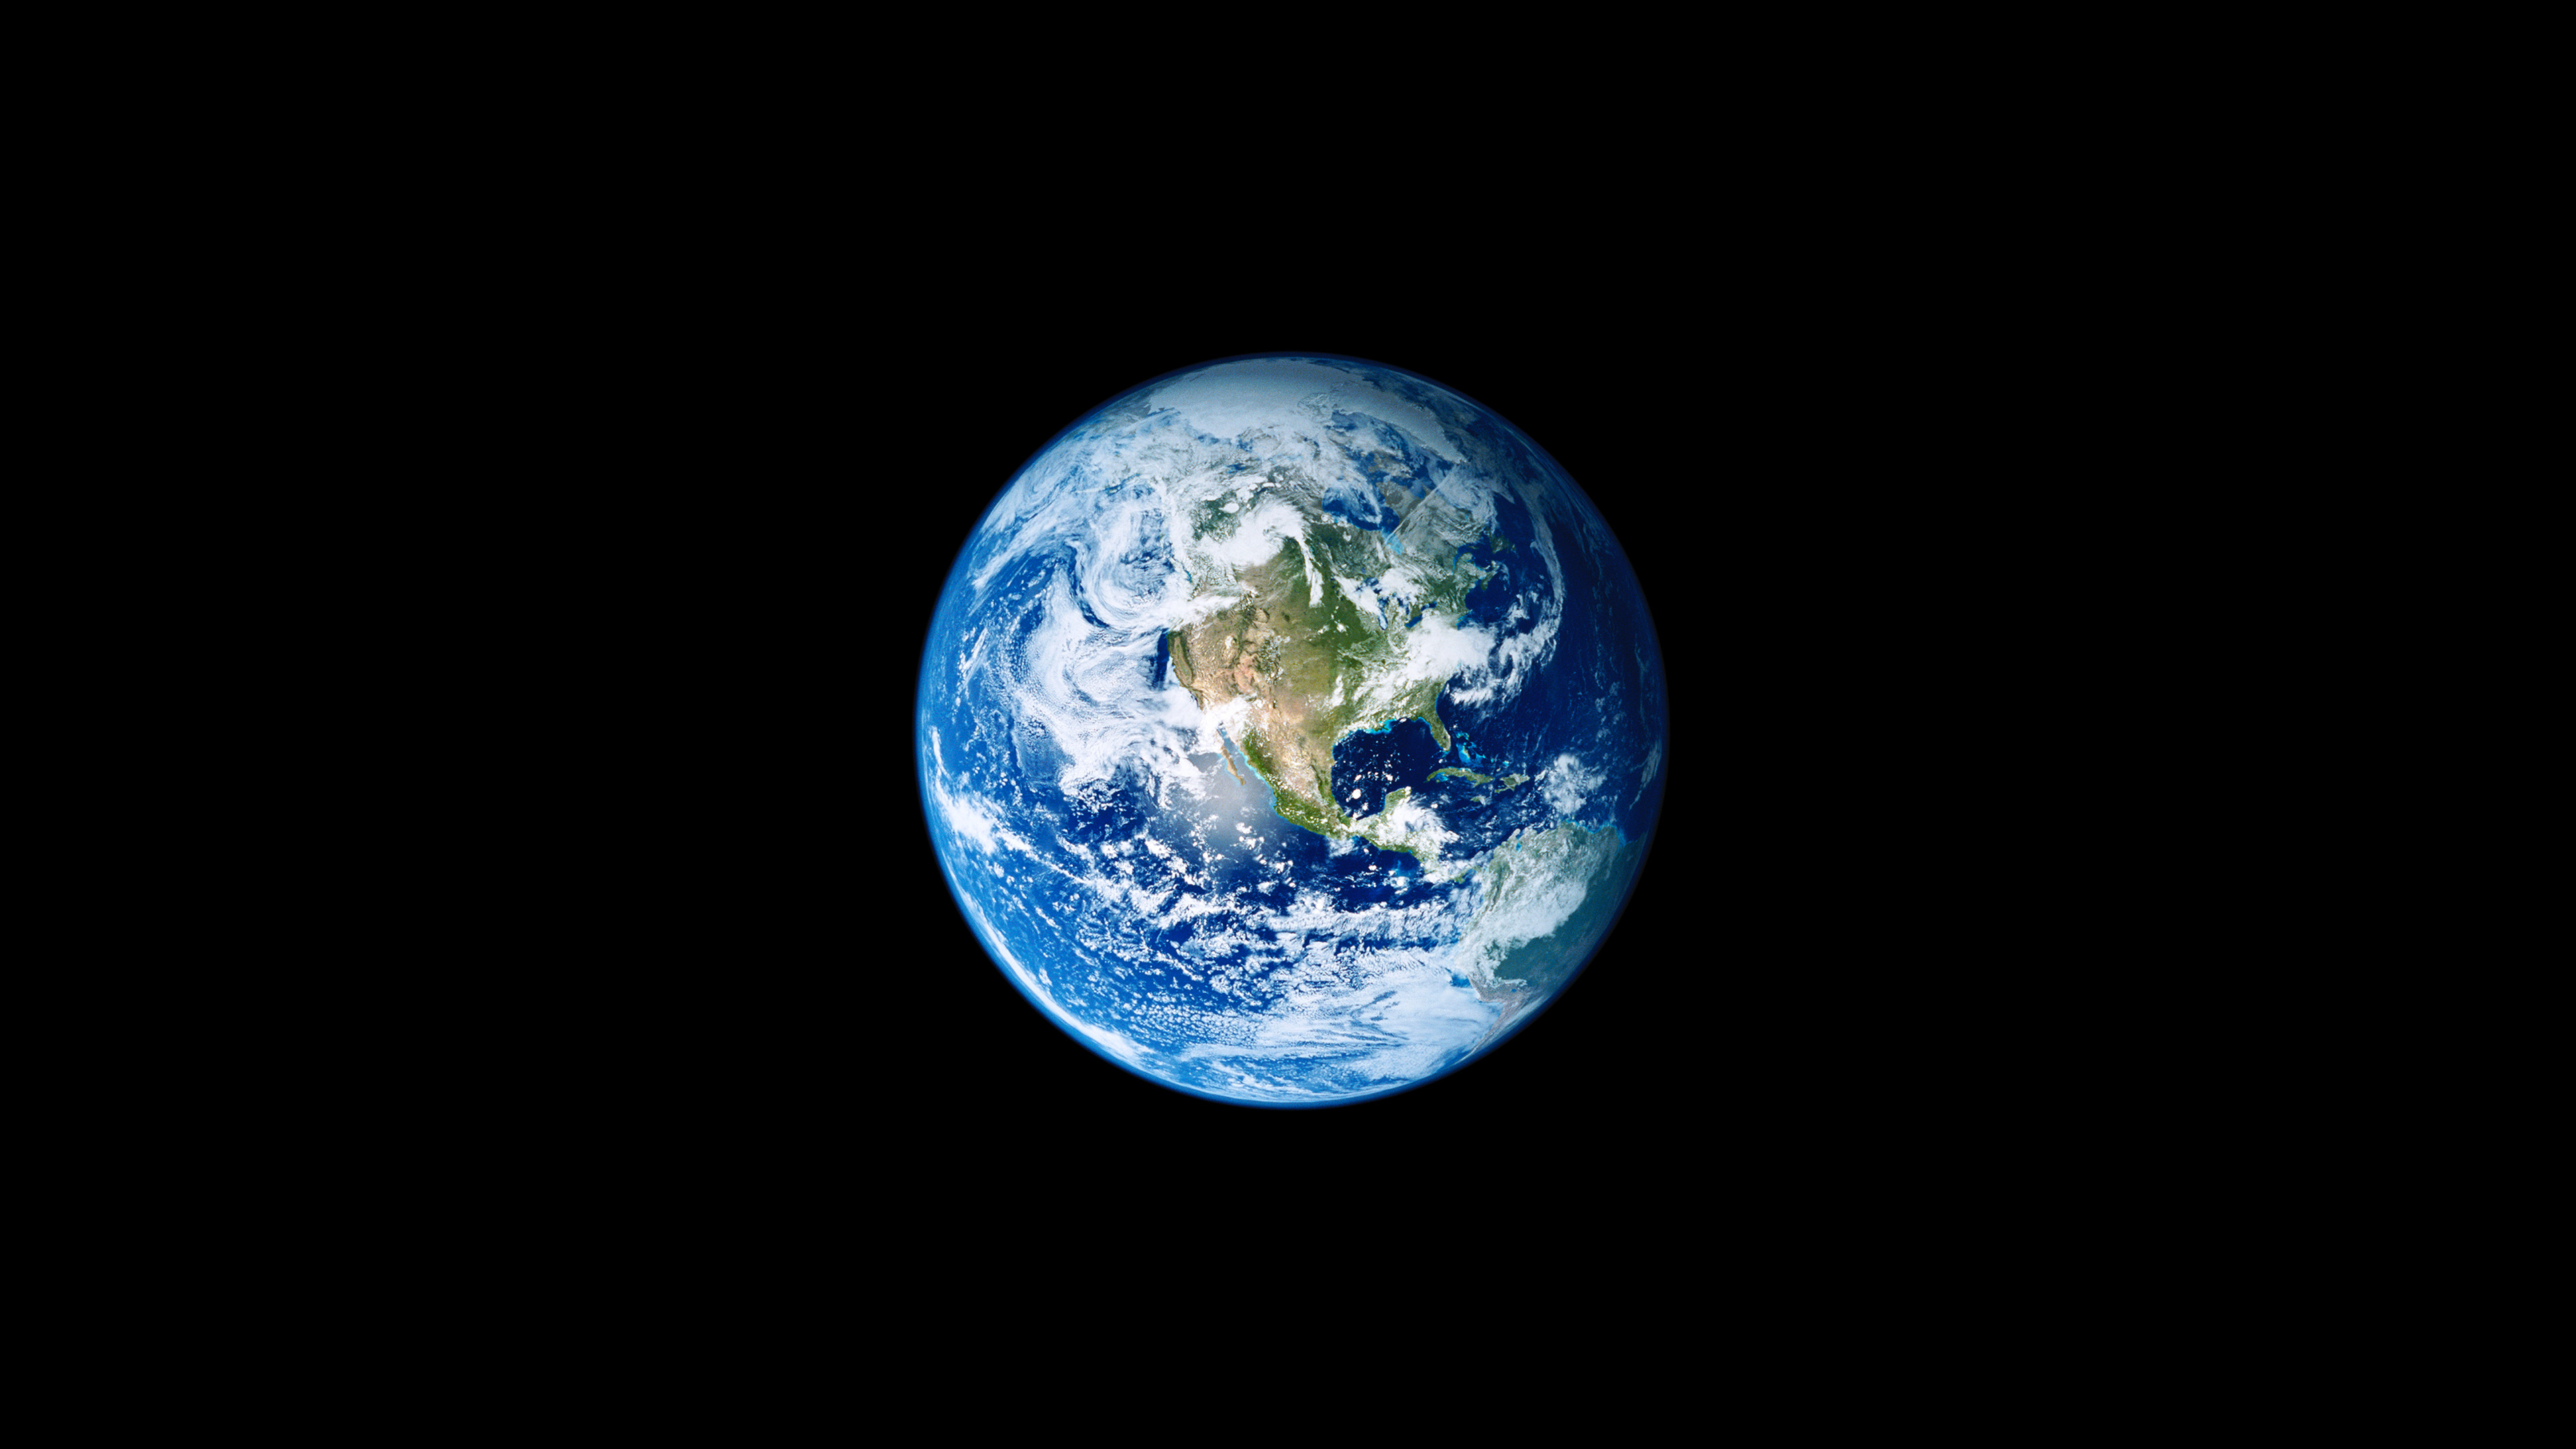 ios 11 earth 4k 1539370826 - Ios 11 Earth 4k - iphone x wallpapers, iphone wallpapers, iphone 8 wallpapers, ios11 wallpapers, hd-wallpapers, earth wallpapers, apple wallpapers, 4k-wallpapers